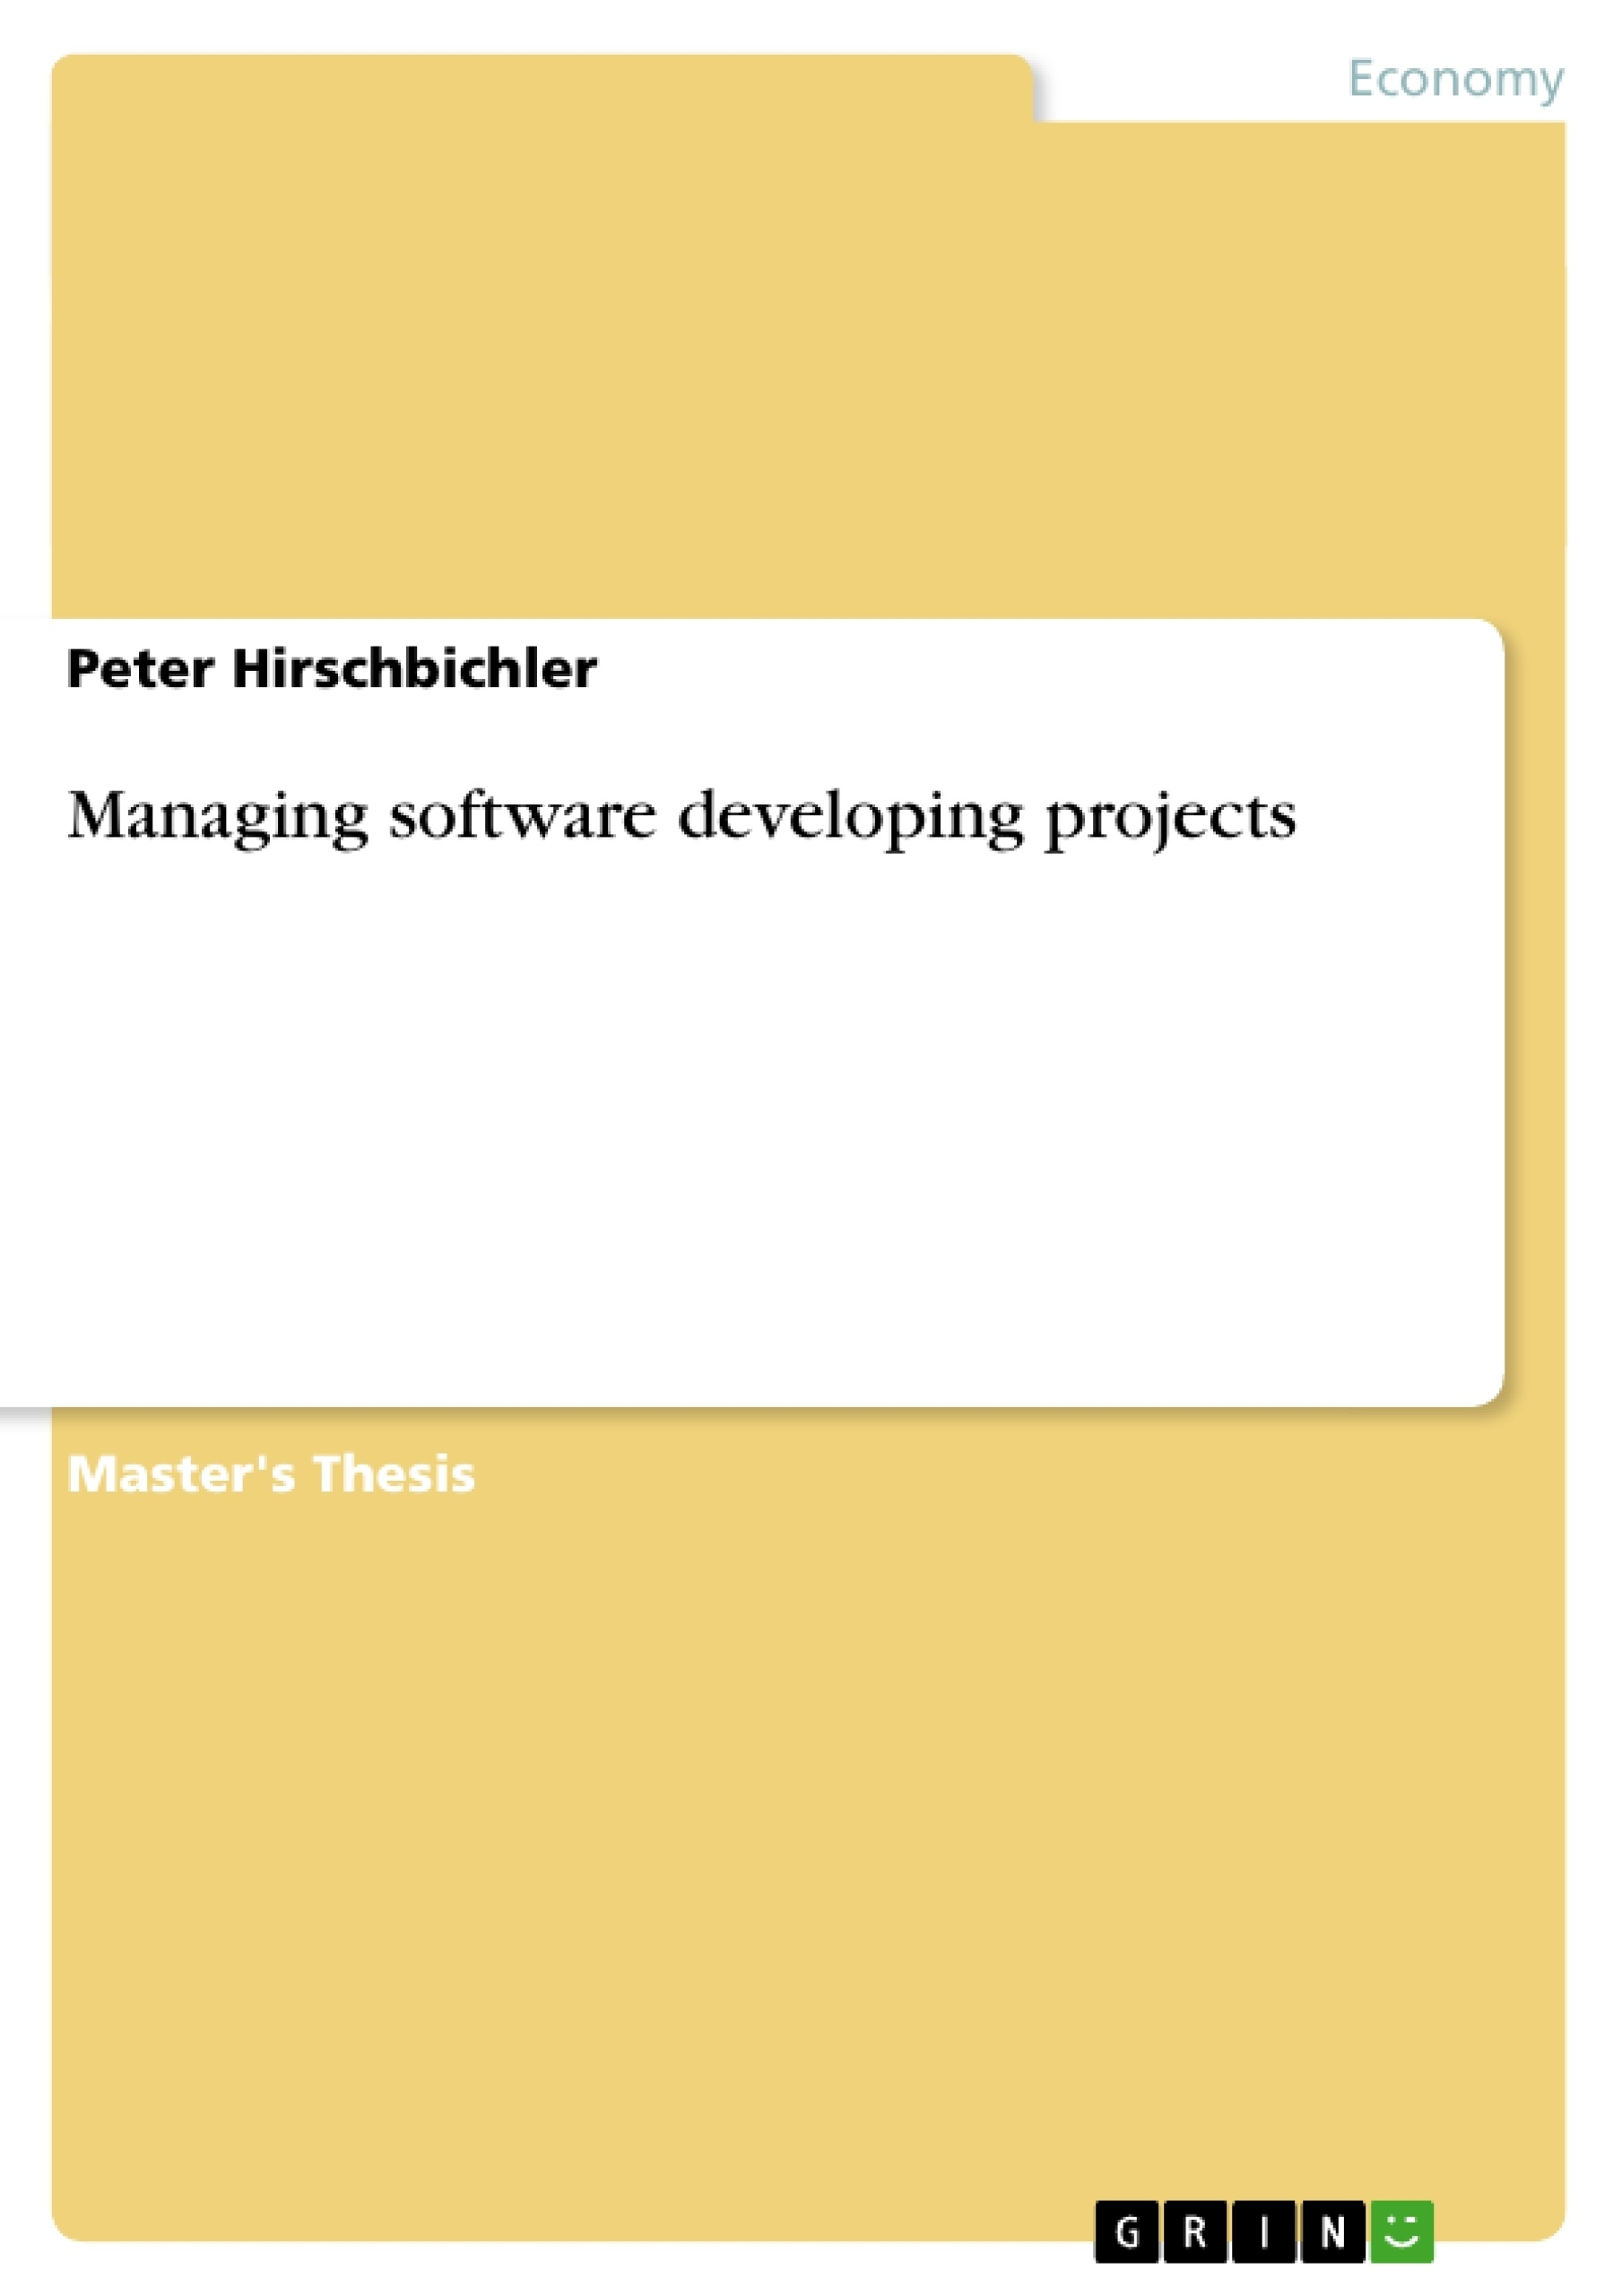 Title: Managing software developing projects